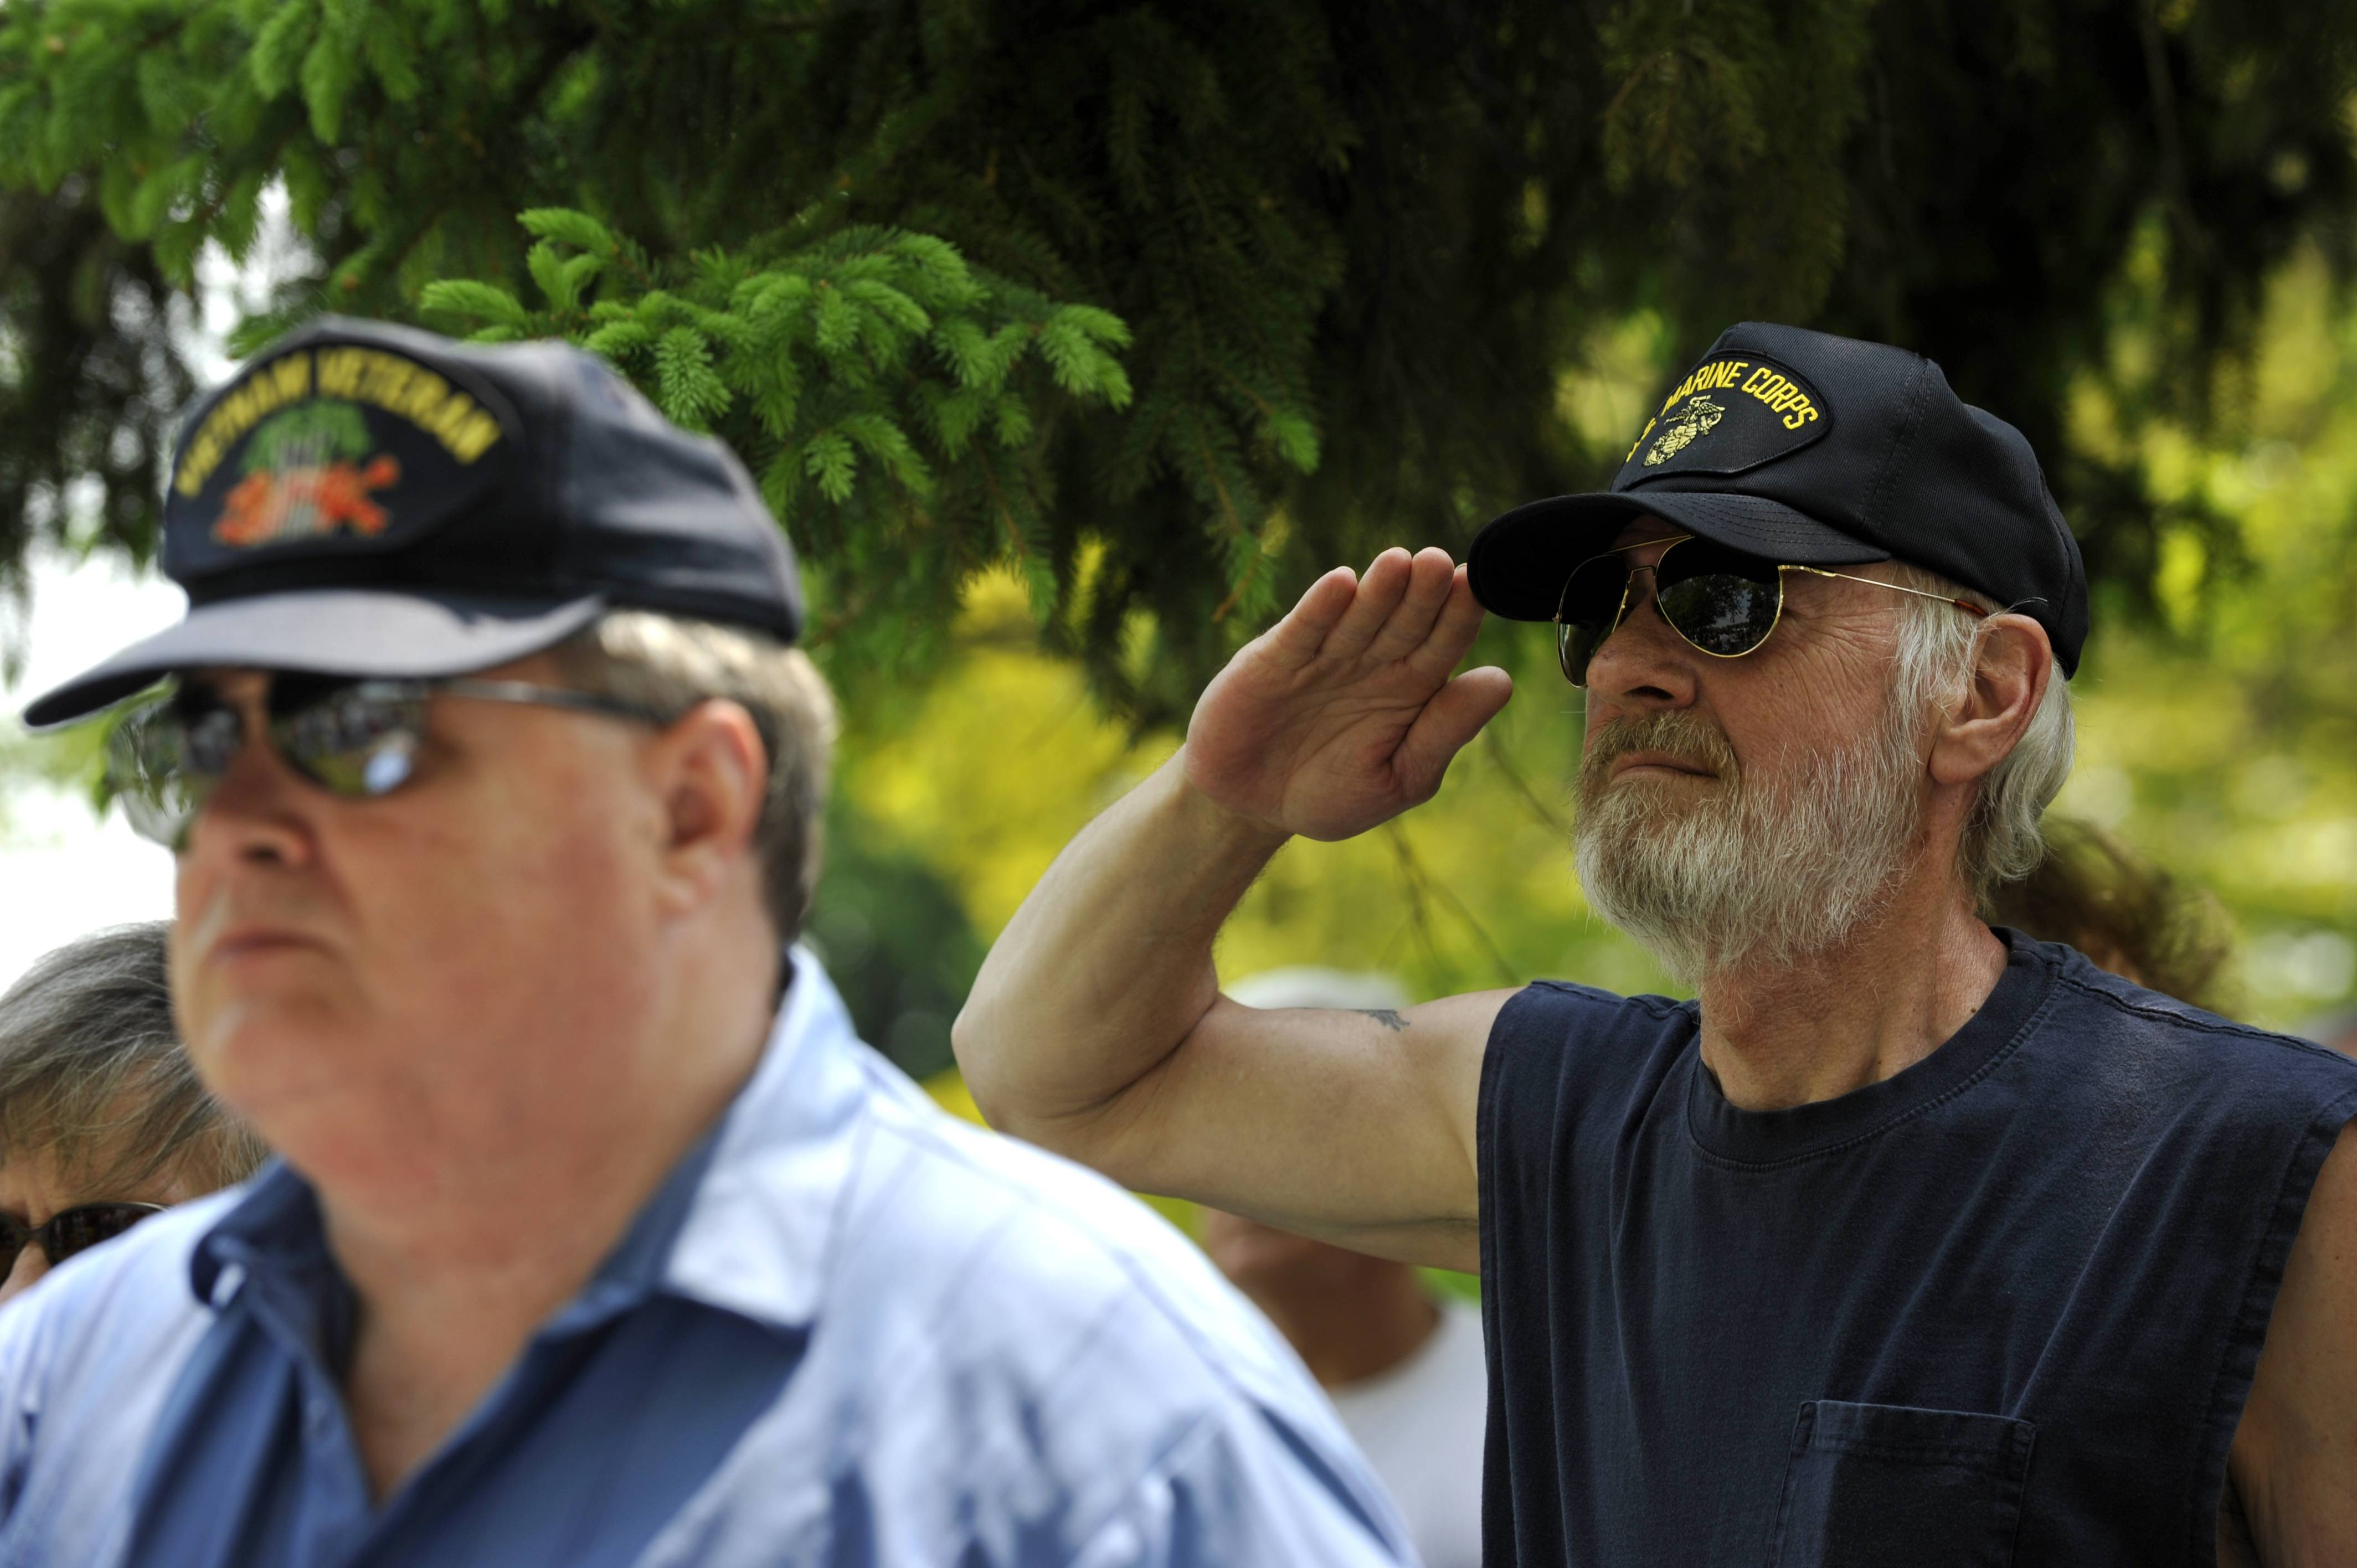 Jack Hosey of Elgin (right), a Vietnam War Veteran, gives salute during the Memorial Day Service at River Valley Memorial Gardens in West Dundee on Monday, May 26. Also pictured is Michael Pearson of Carpentersville (left), also a Vietnam War Veteran.